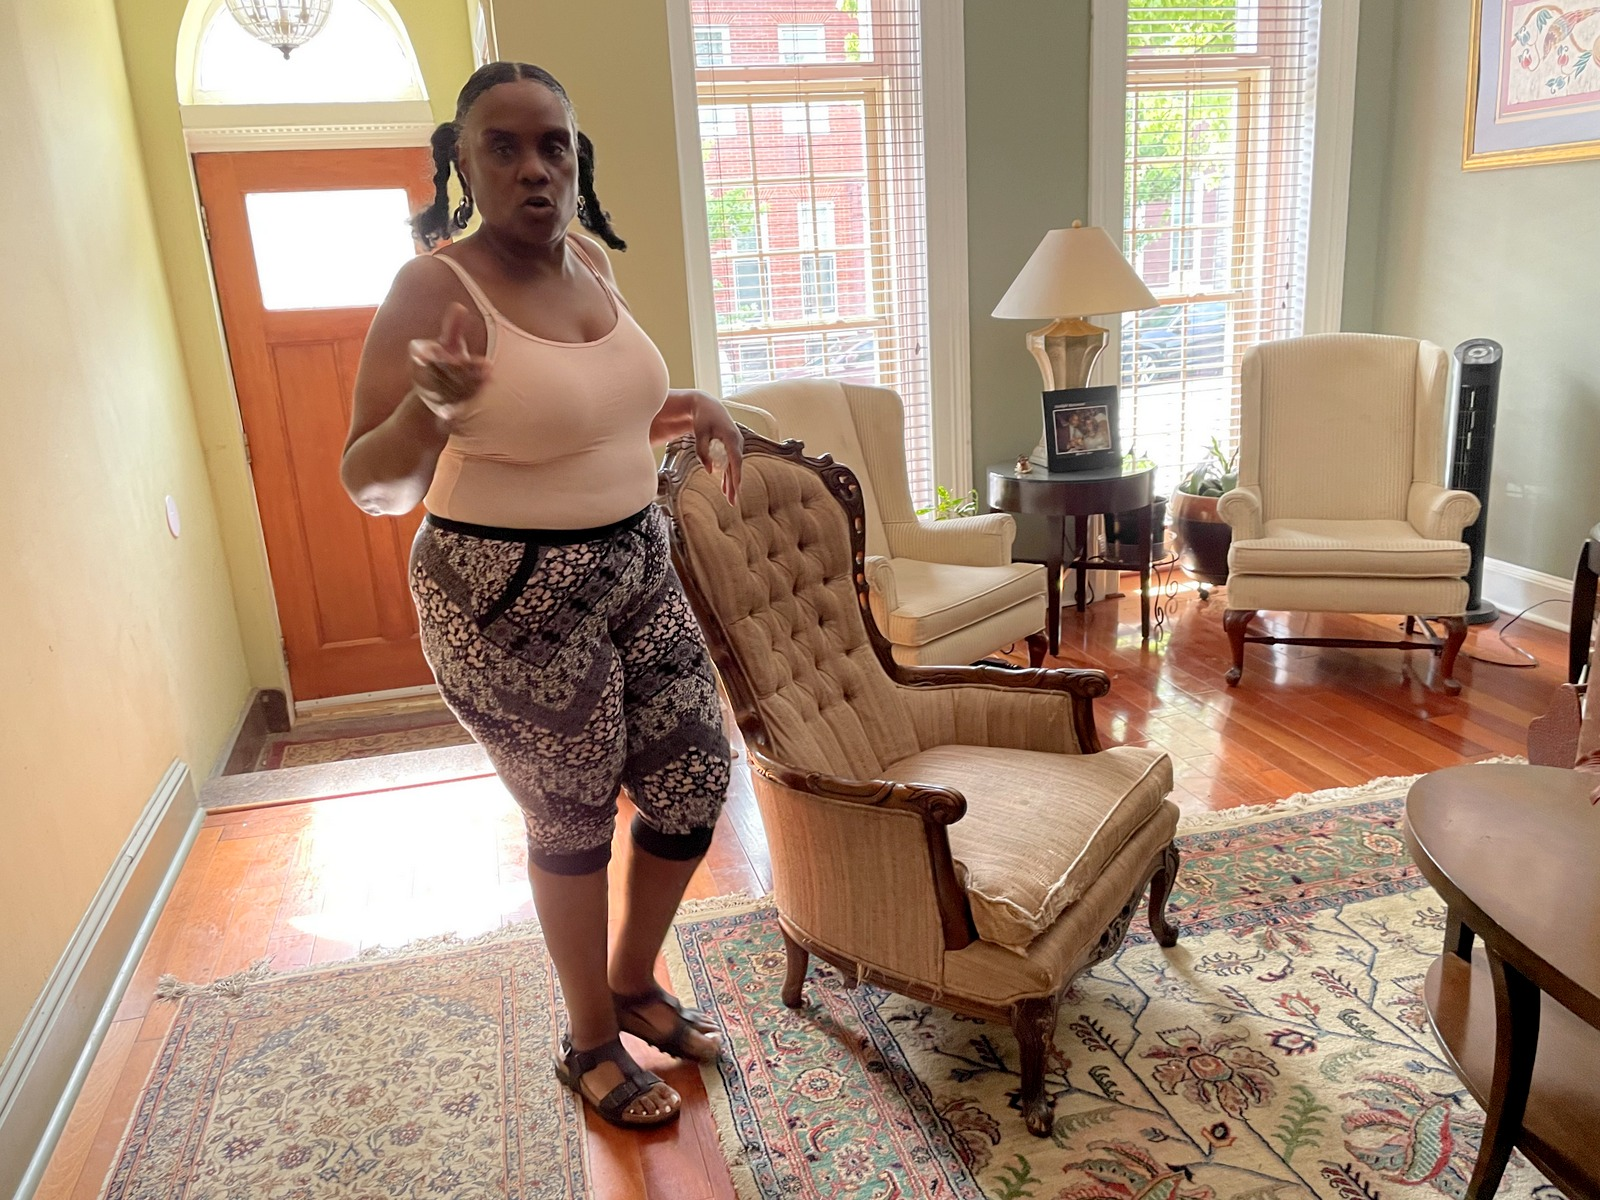 Sonia Eaddy in her house on CarrolltonAvenue, under condemnation proceedings by the city, and in her backyard with her husband Curtis. (Fern Shen)